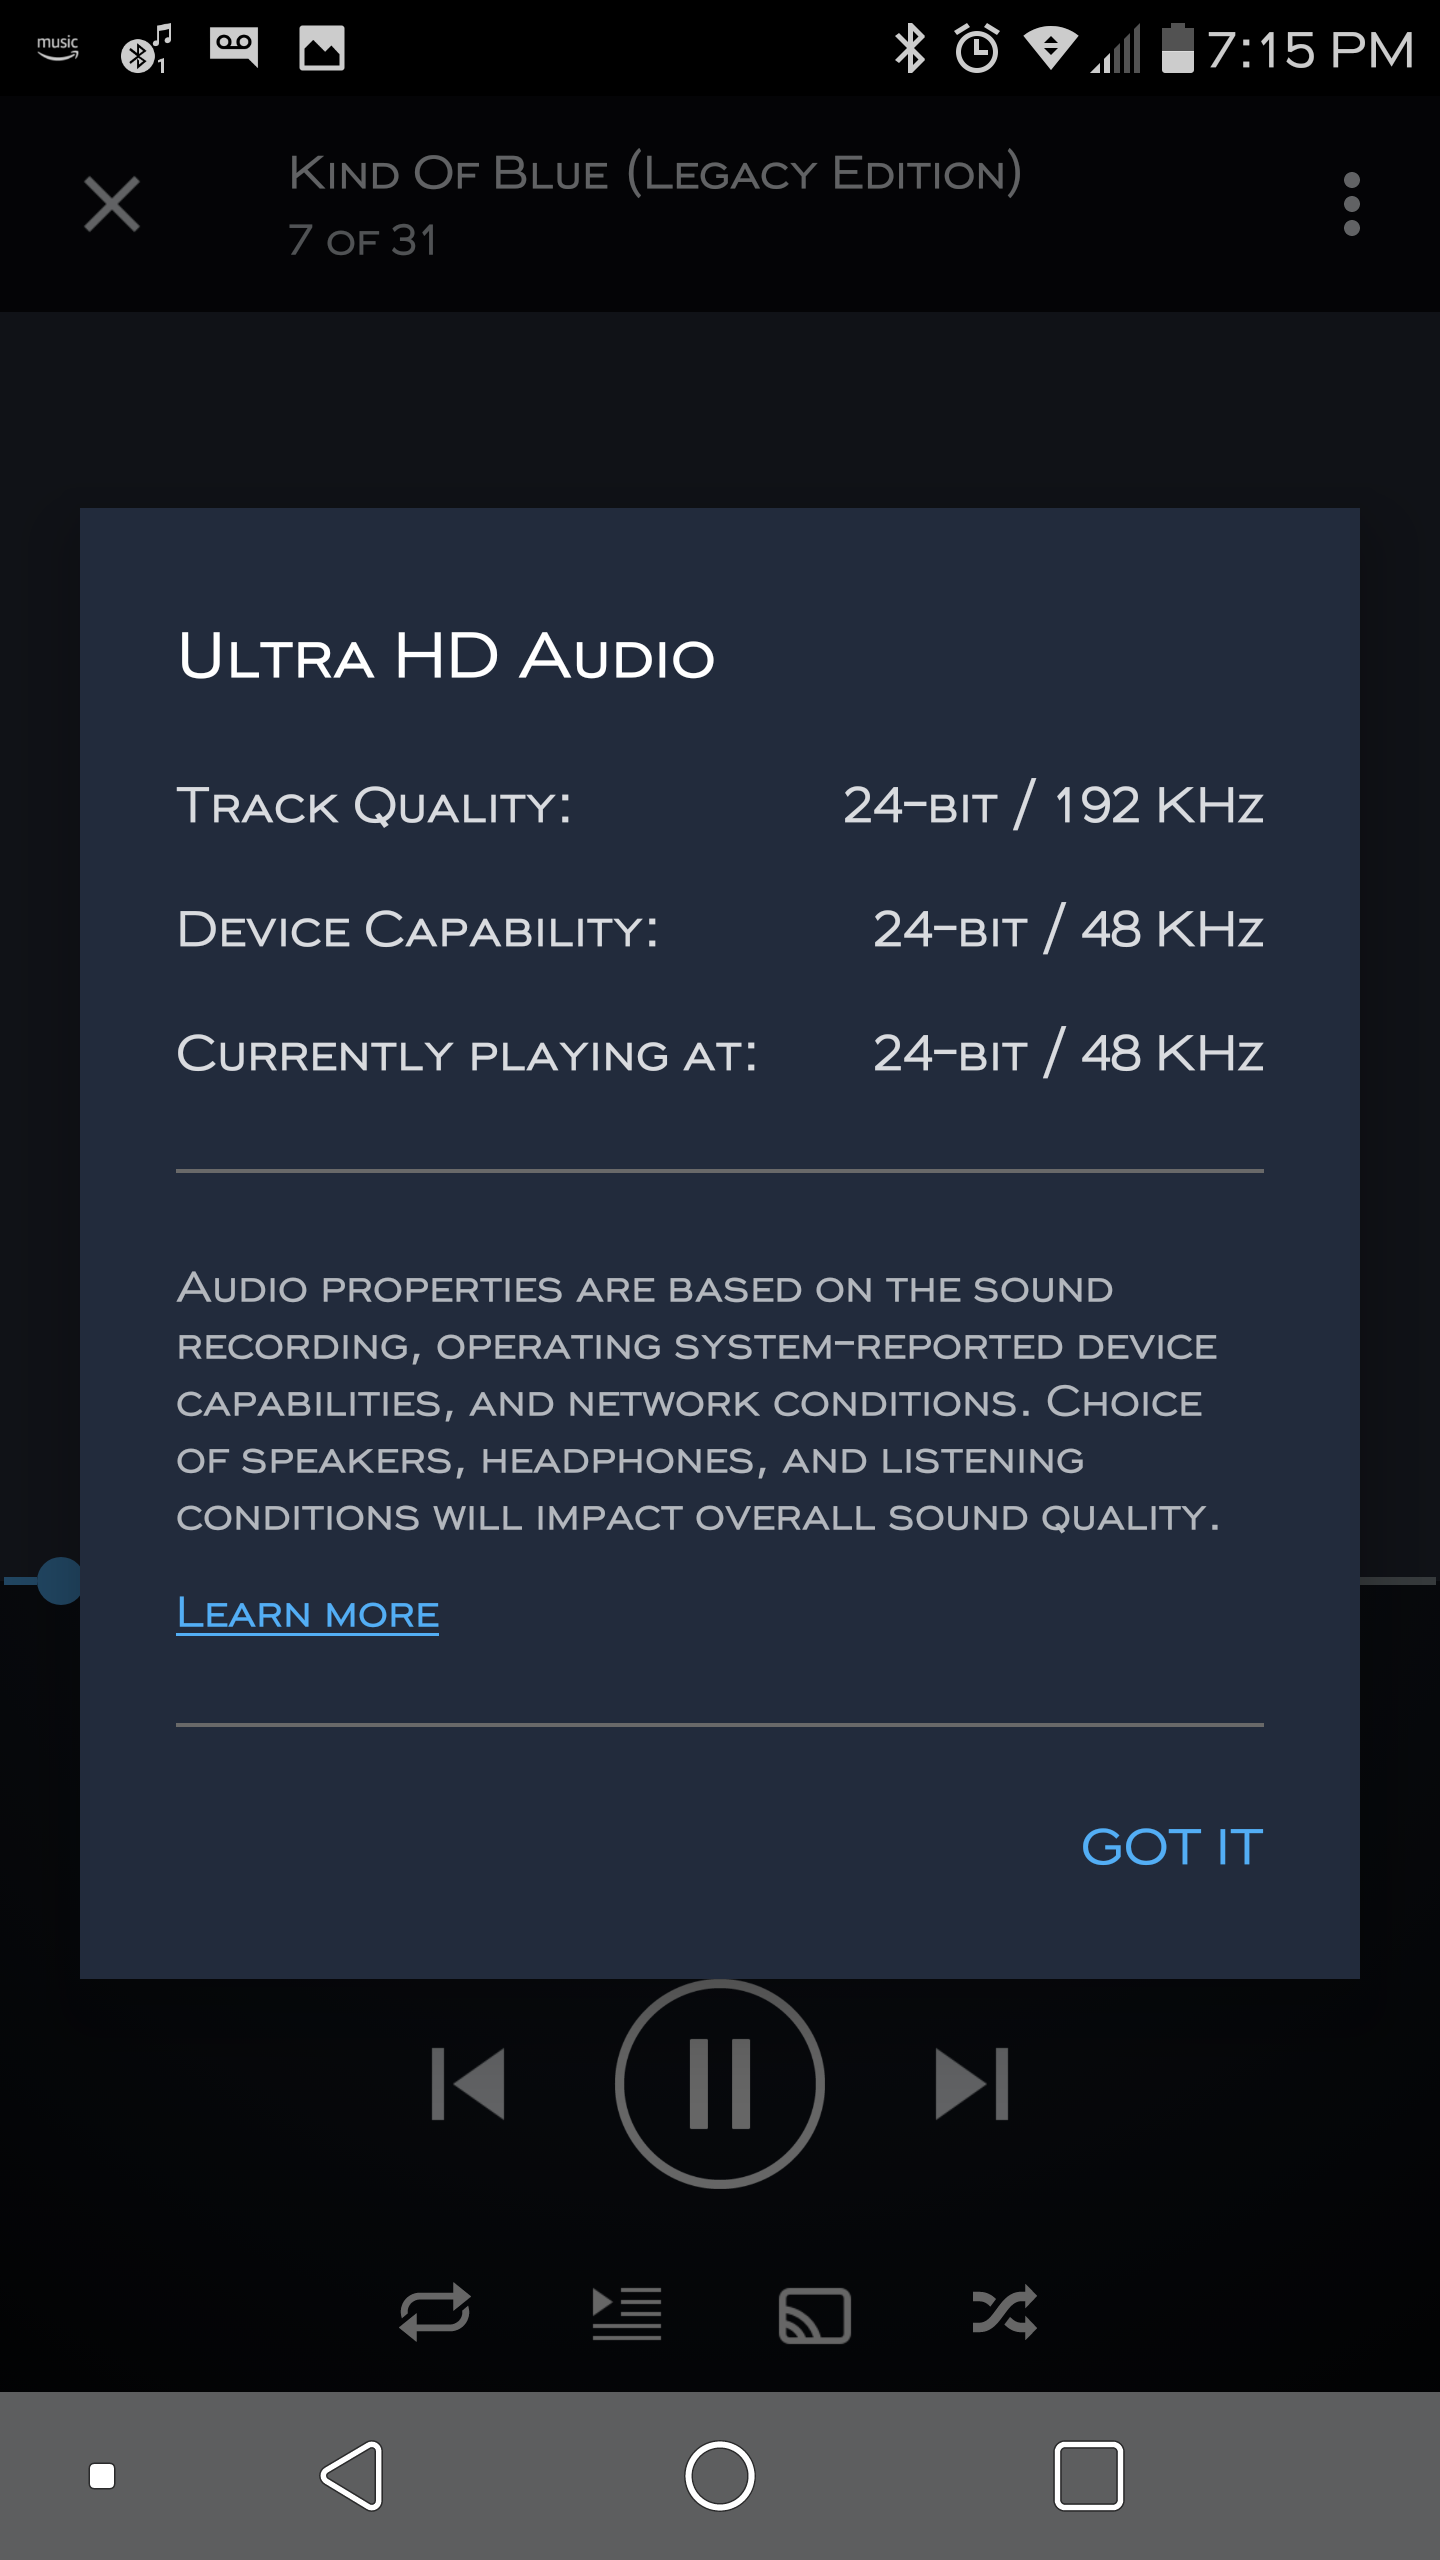 Tidal HiFi review: The good, the bad, and the costly - SoundGuys